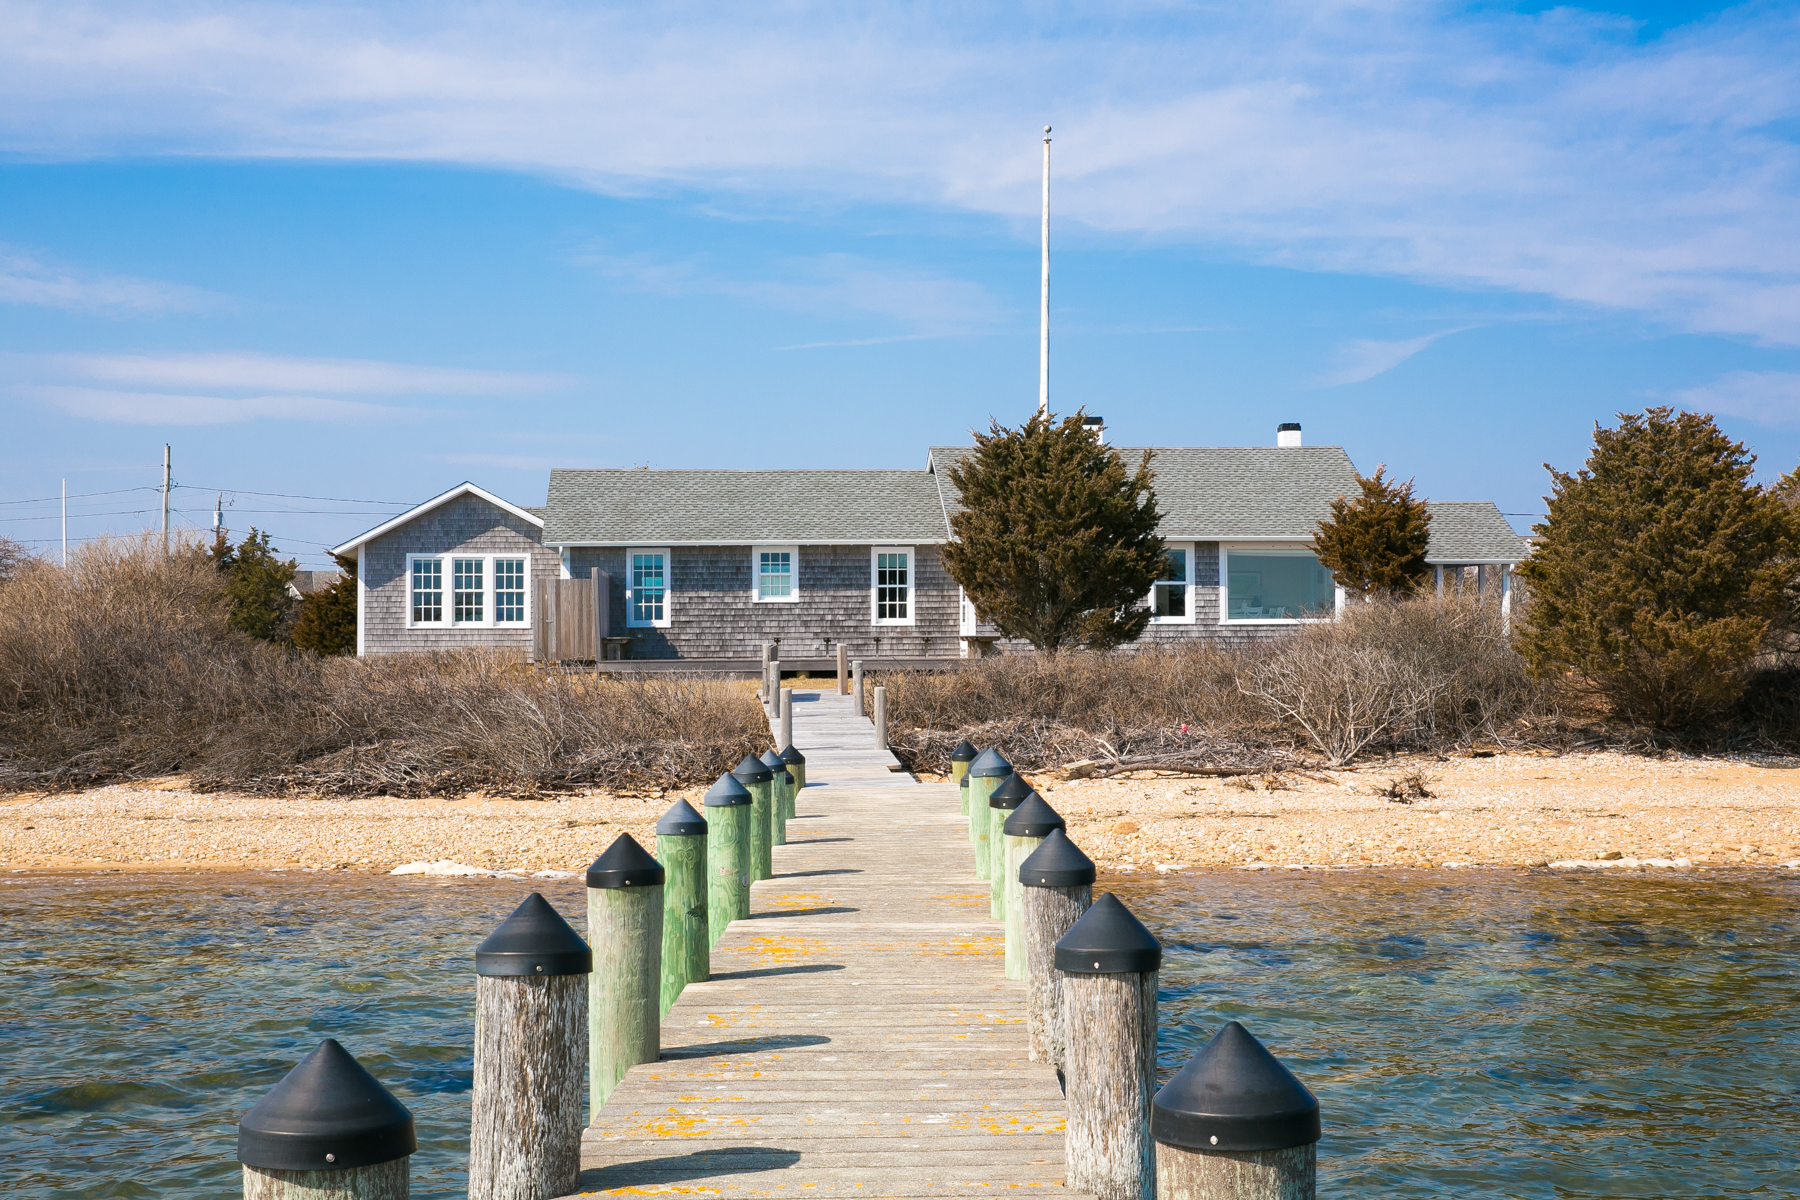 단독 가정 주택 용 매매 에 Stunning waterfront location on Katama Bay 85 Edgartown Bay Road Edgartown, 매사추세츠, 02539 미국